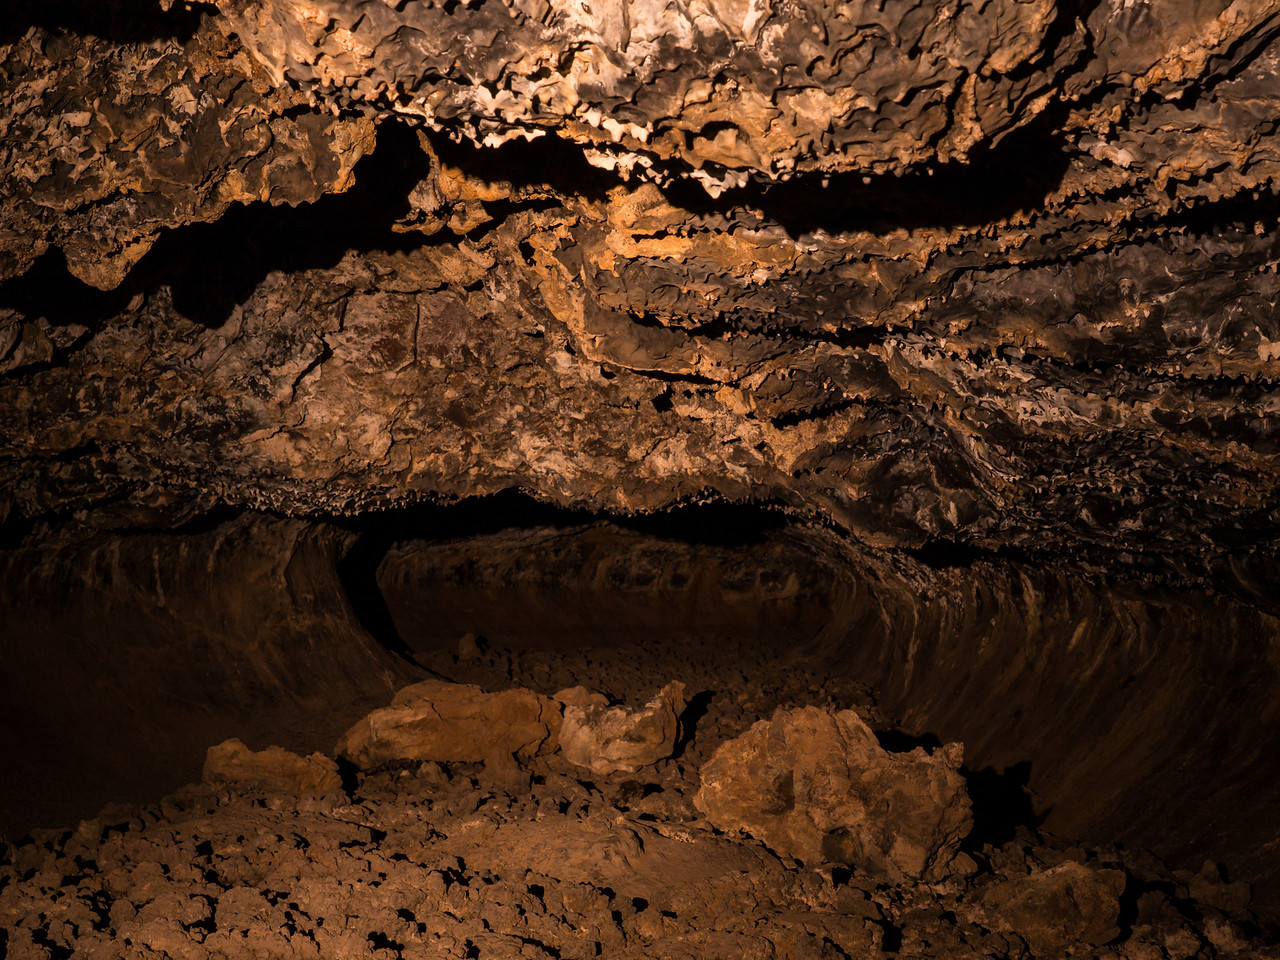 Golden dome cave